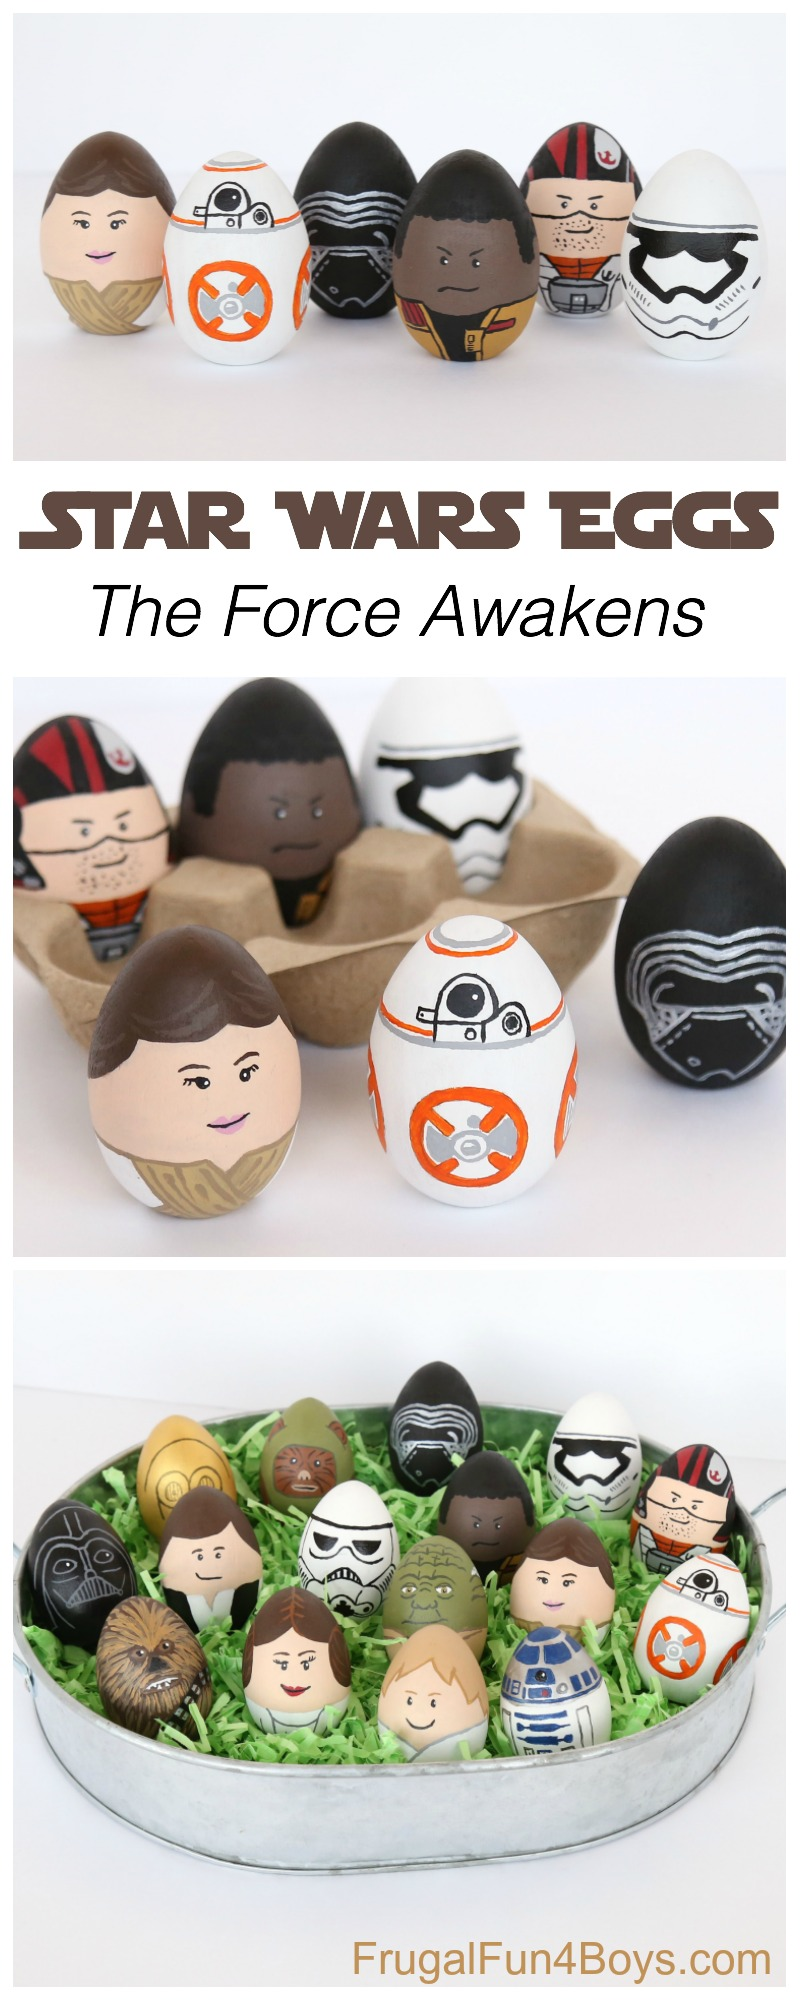 Star Wars Painted Eggs - The Force Awakens! Rey, BB8, Finn, Kylo Ren, Poe, Stormtrooper